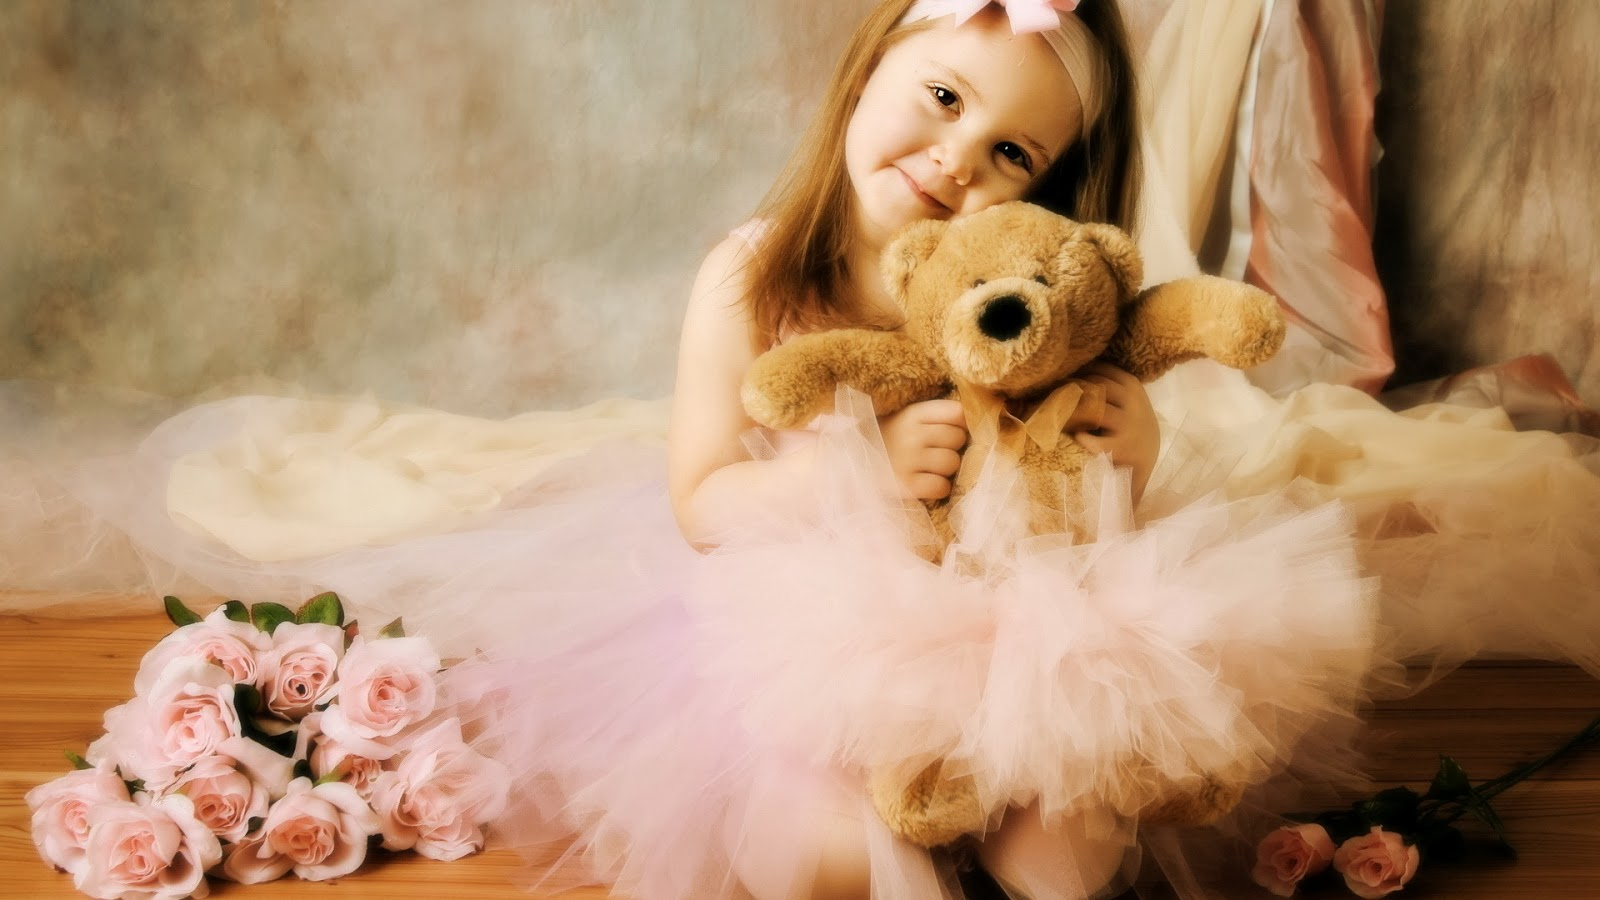 download free lovely and beautiful teddy bear wallpapers | free